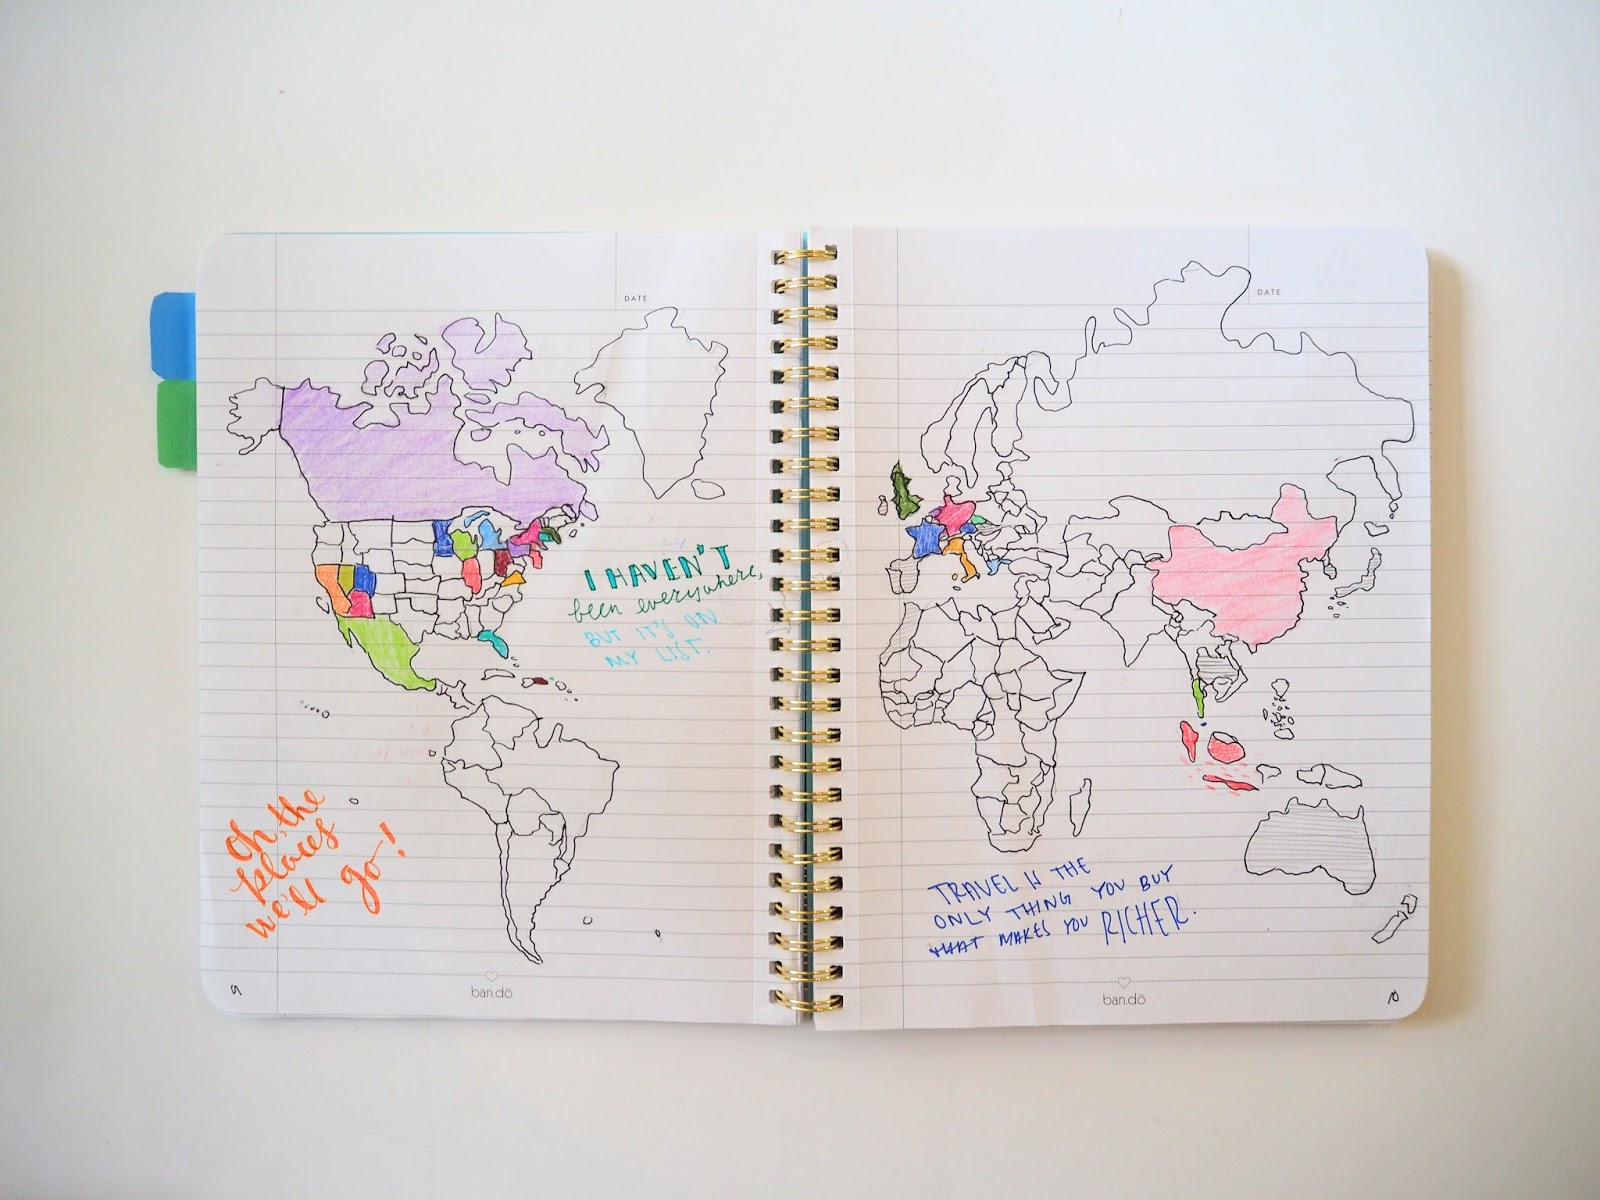 Bullet journal map of places I've visited and places I want to explore